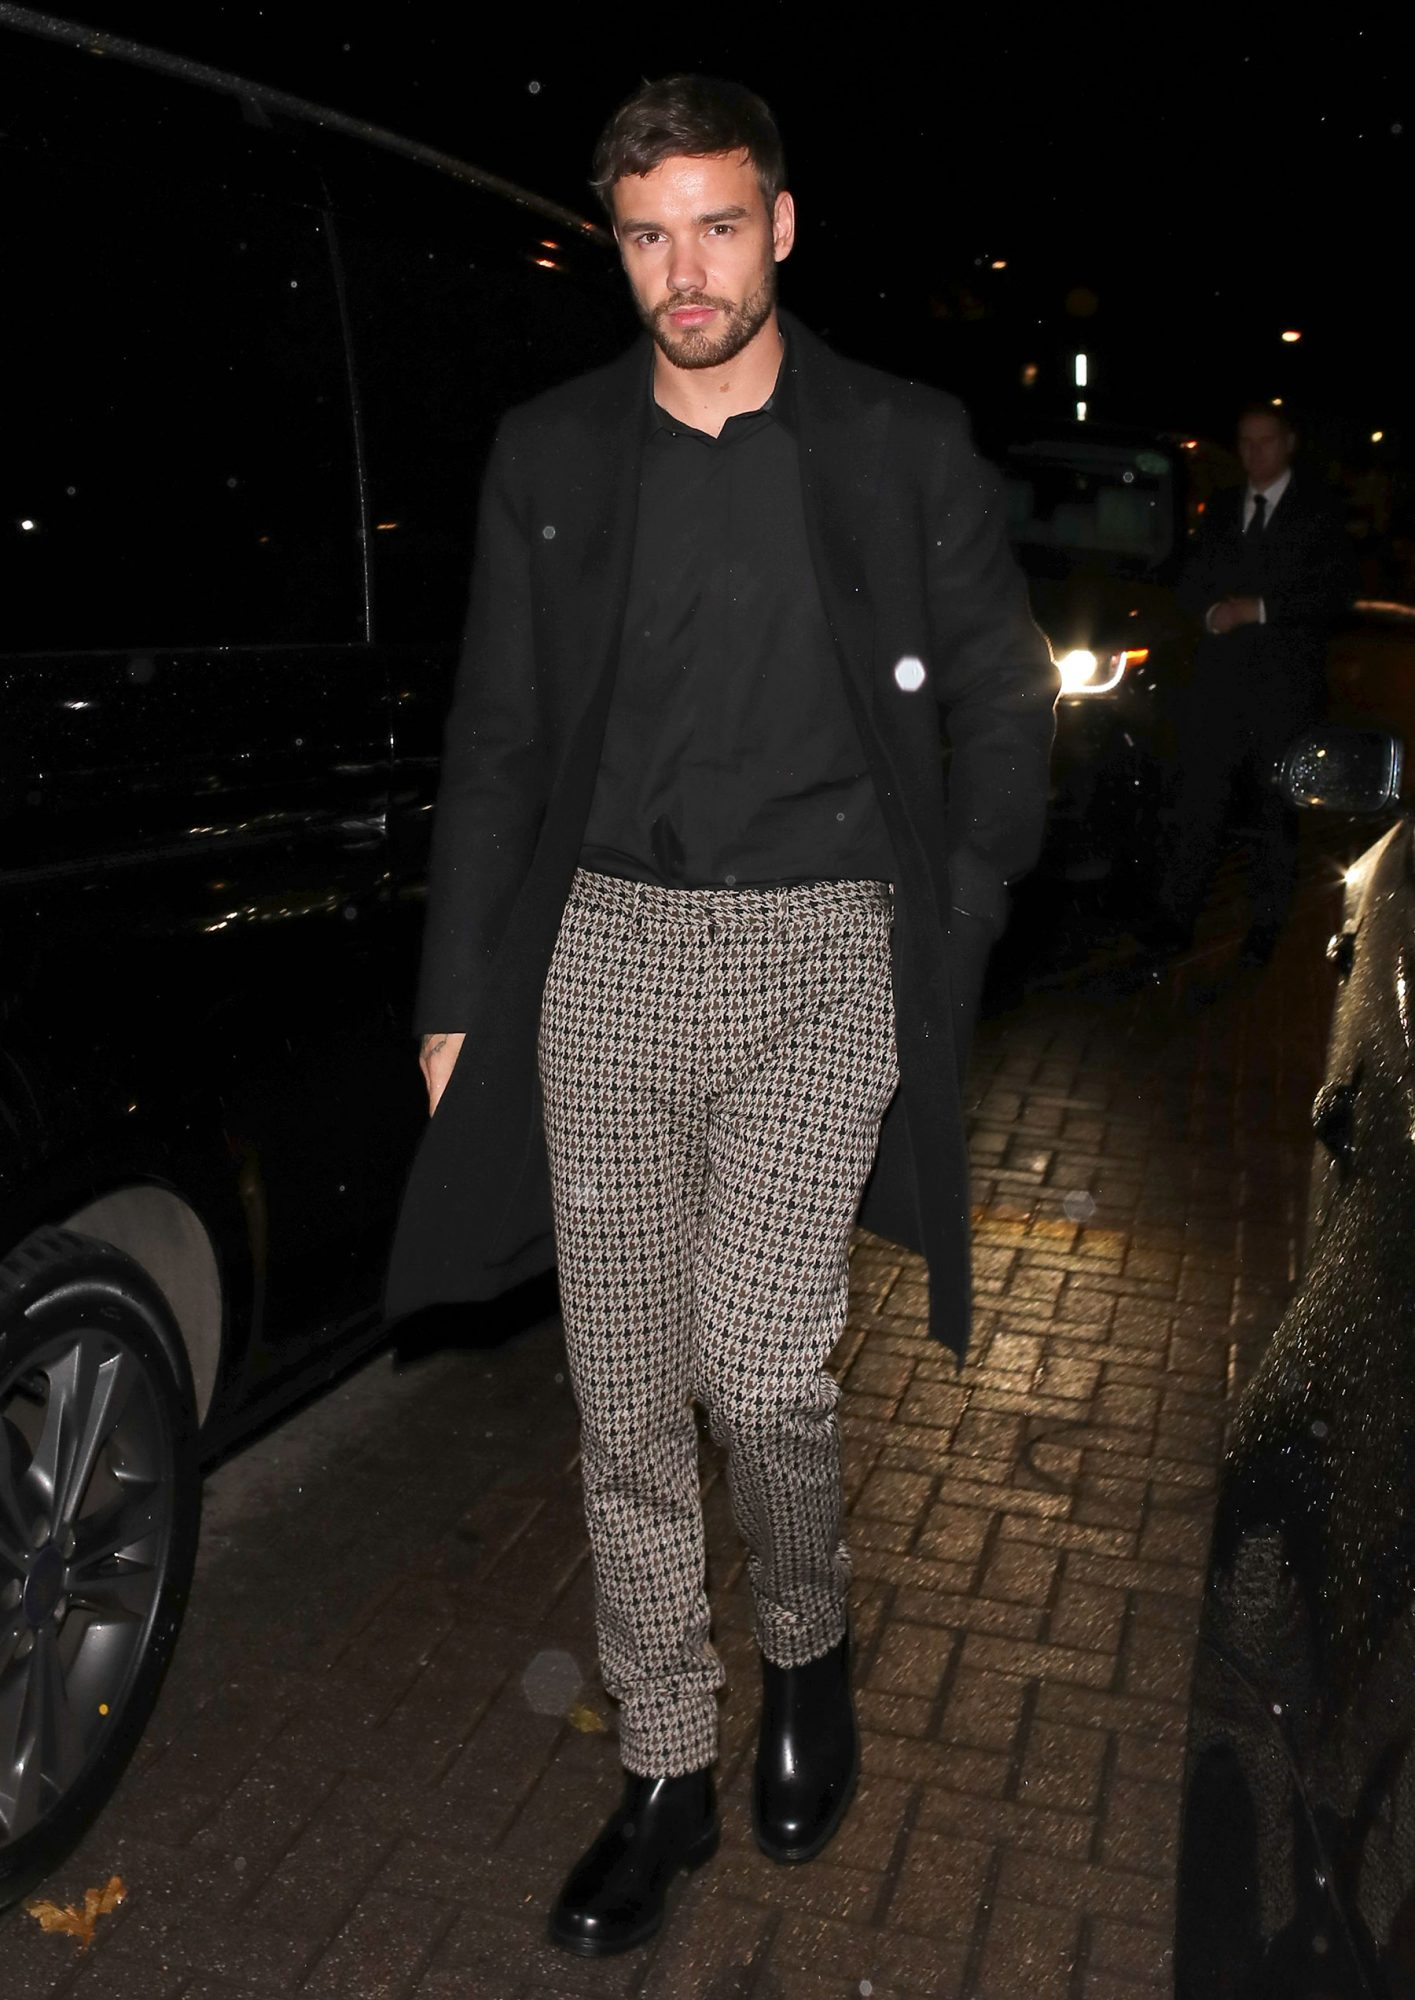 Liam Payne arriving at Laylow for the Rita Ora Halloween party